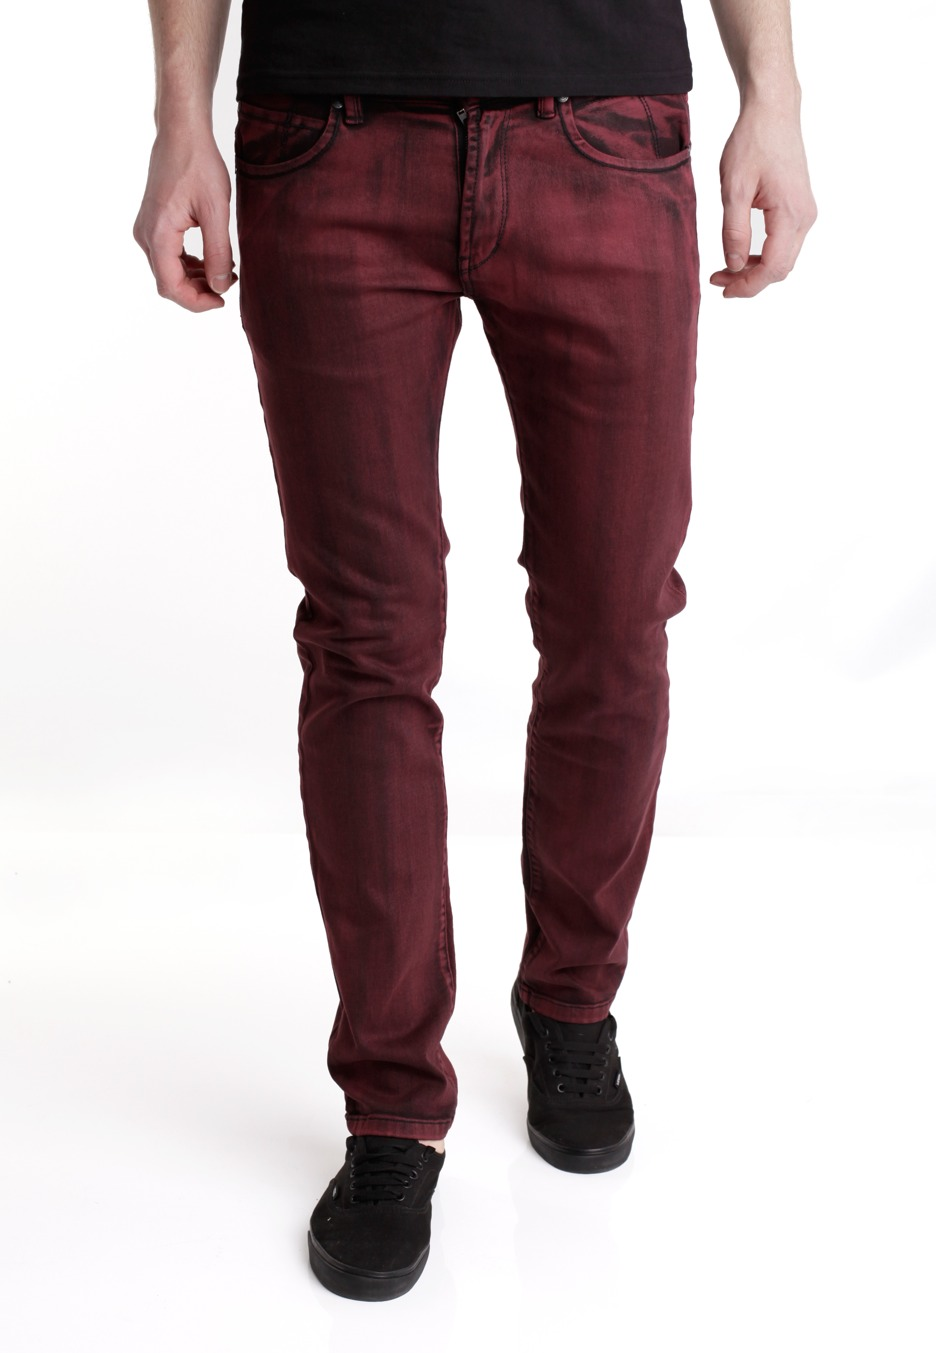 There are numerous ways to rock a pair of red jeans. The choice of footwear however is crucial, so here are several different styles, colors and patterns that will look great with the red jeans. When you wear red, the most powerful of all colors, you have to tone it down a bit with neutral and.